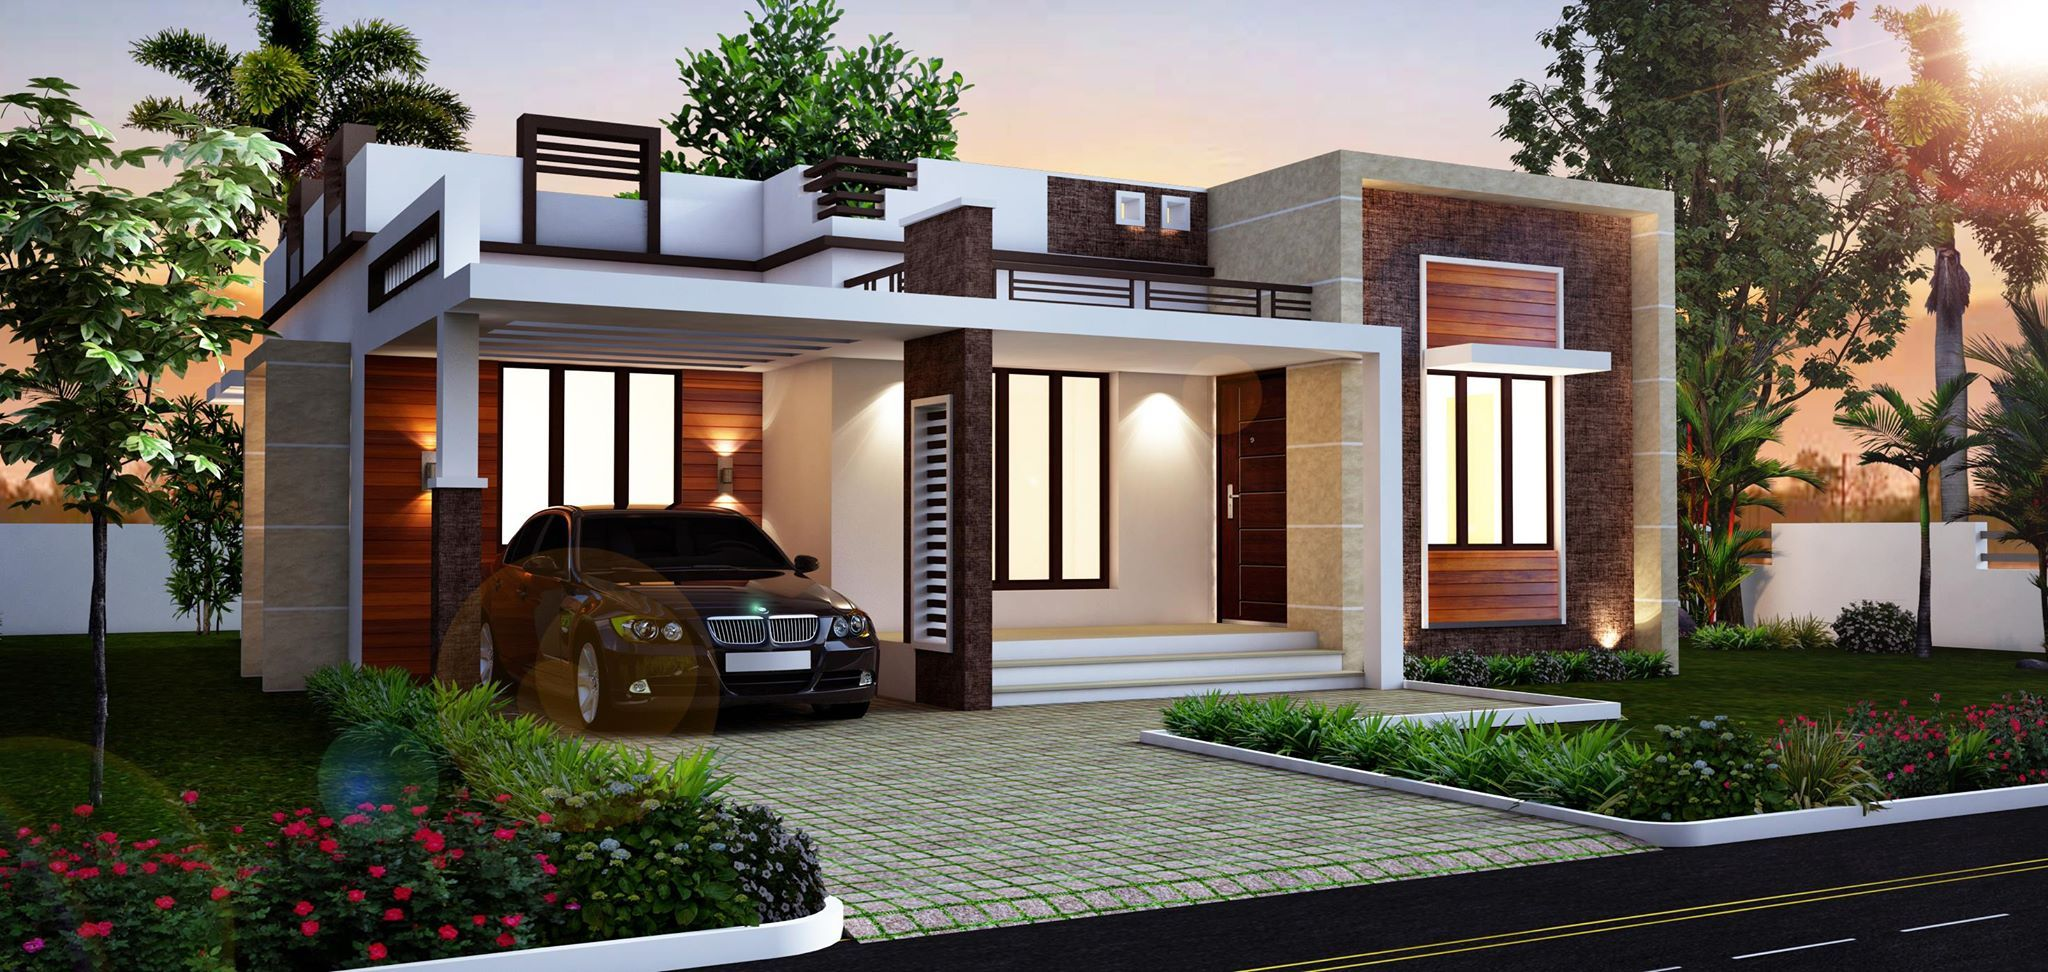 Beautiful models of houses yahoo image search results for Model house photos in indian